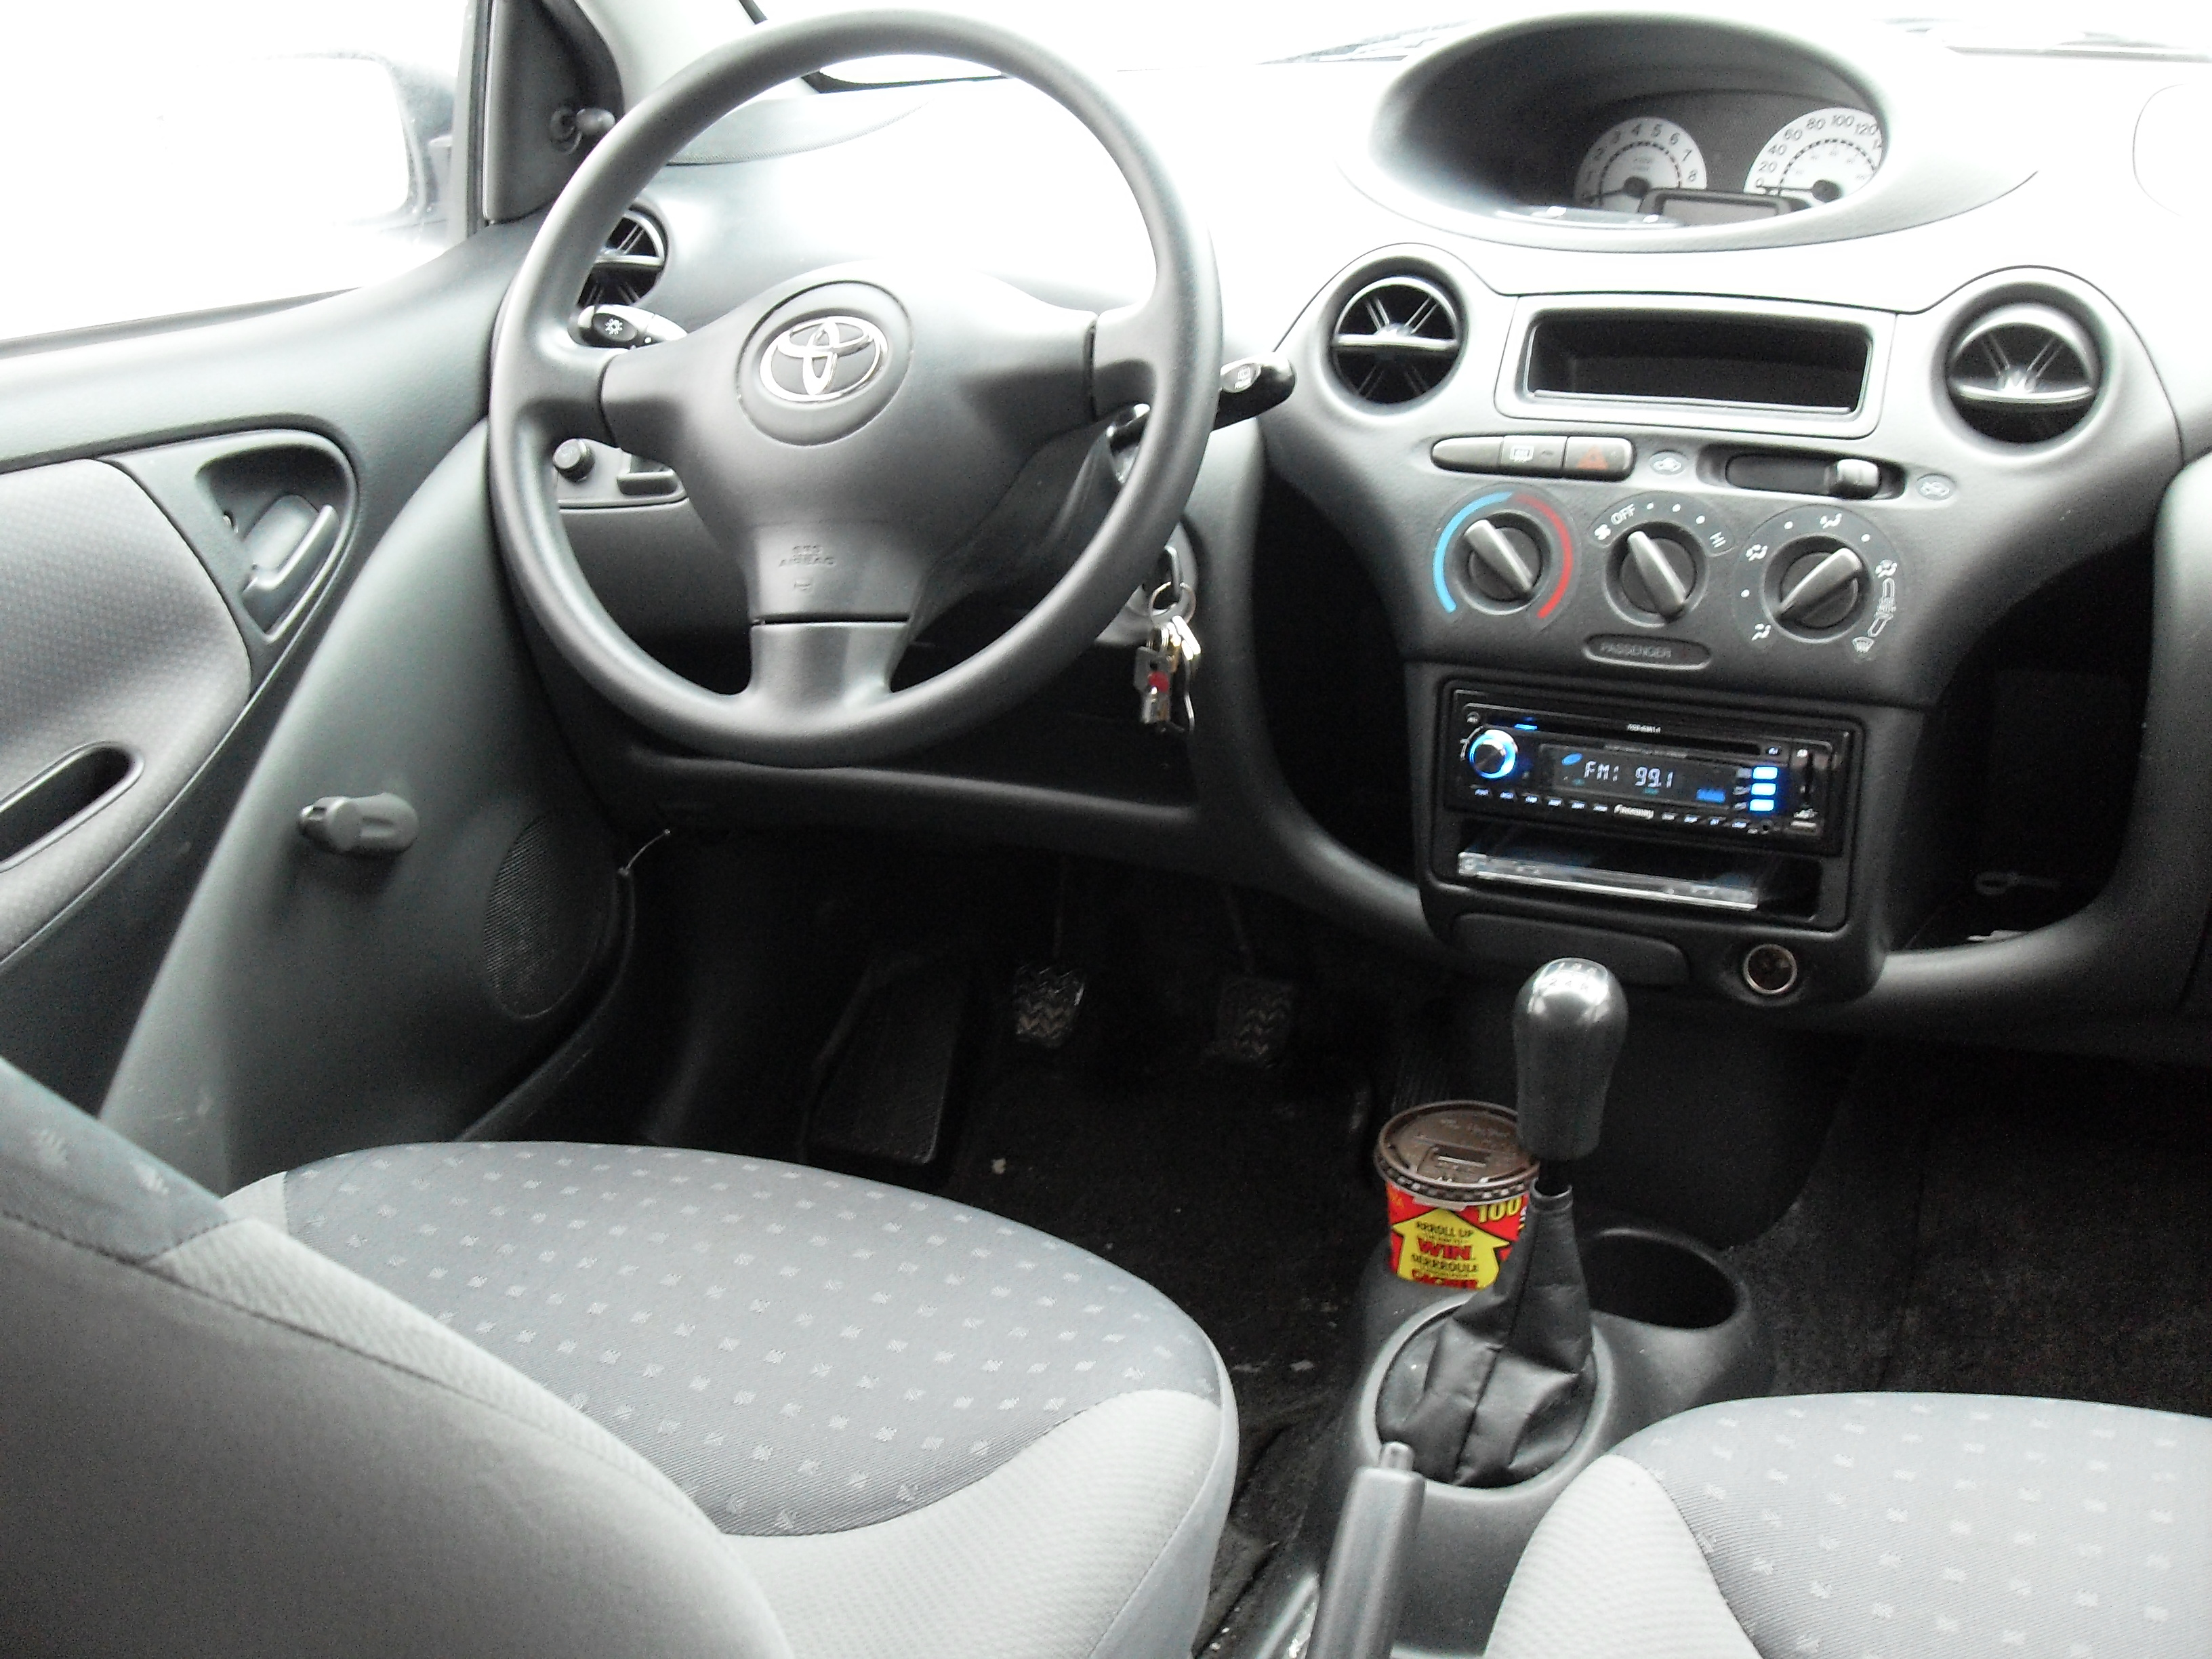 Picture of Familiarize Yourself With the Car and the Controls